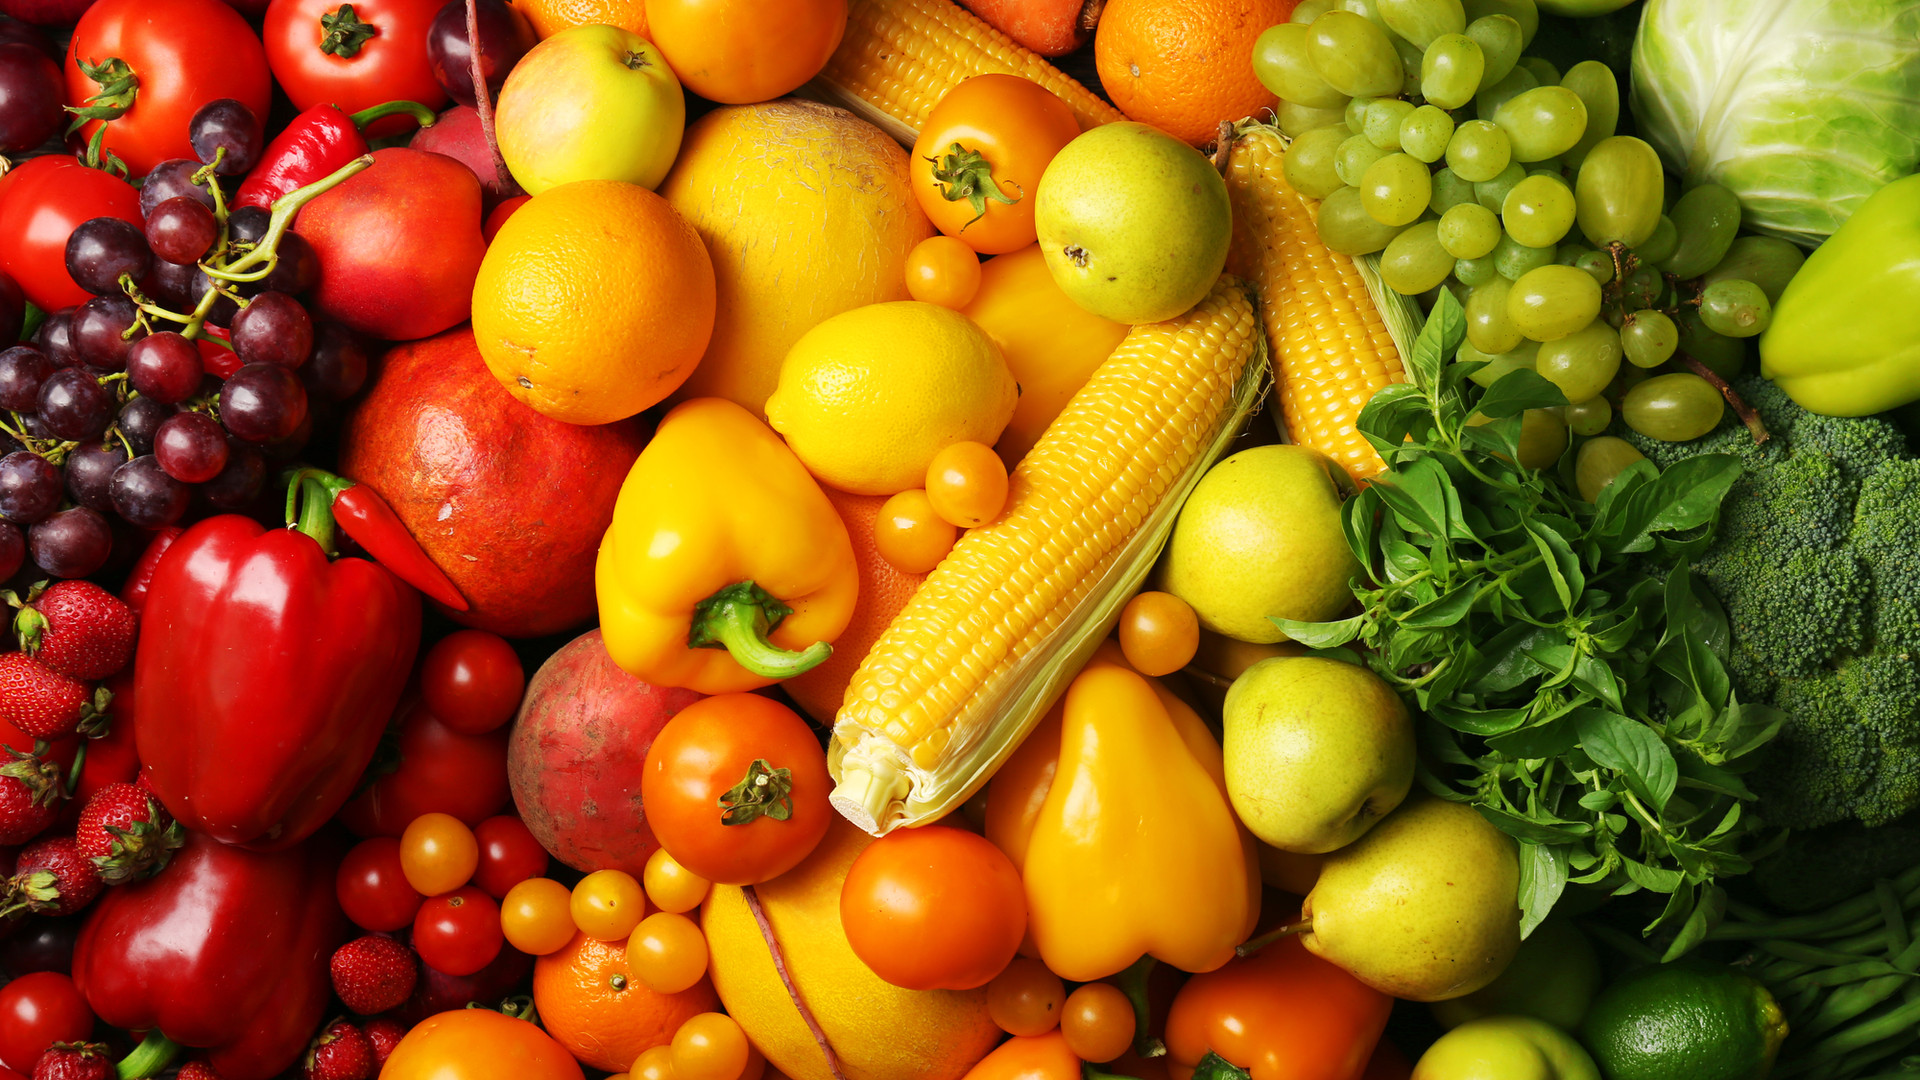 Colorful fruits and vegetables backgroun